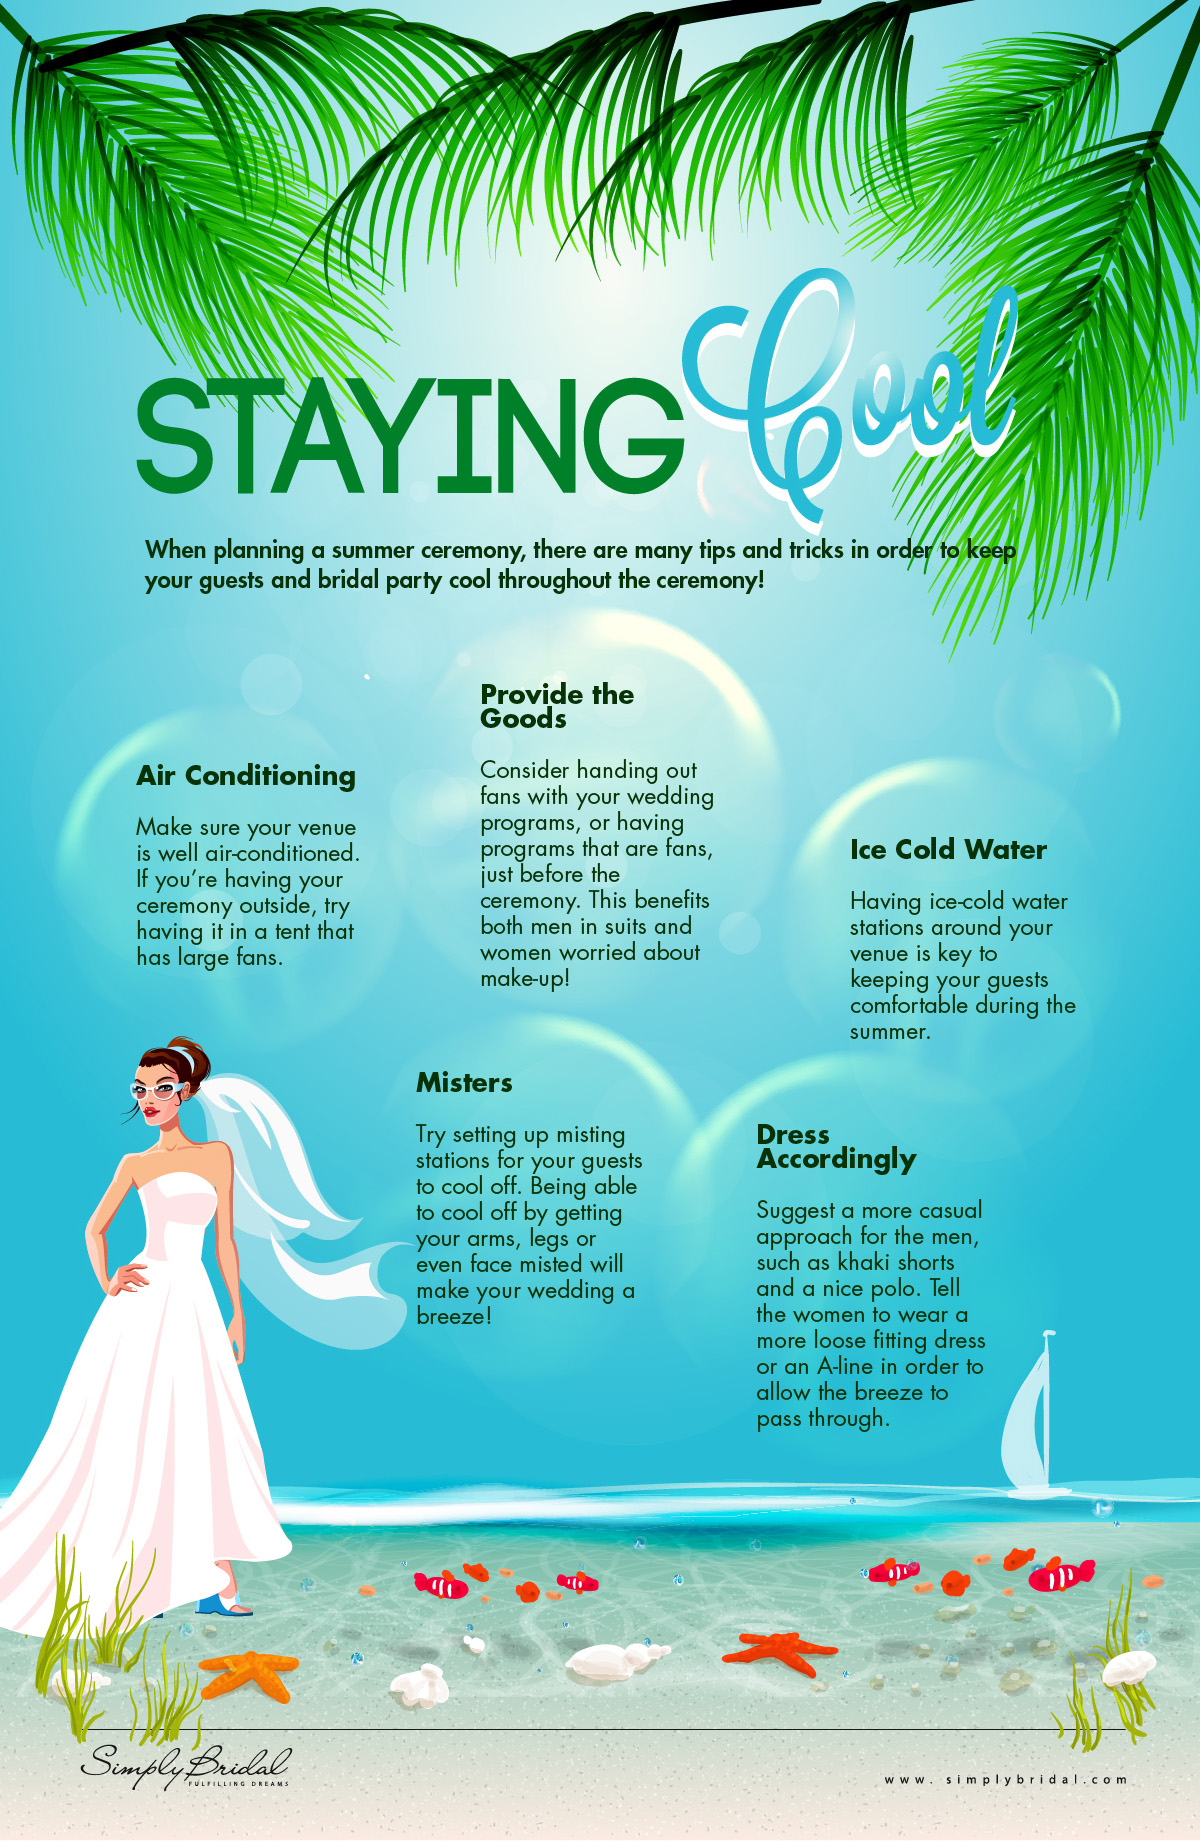 Staying Cool at Summer Weddings by SimplyBridal